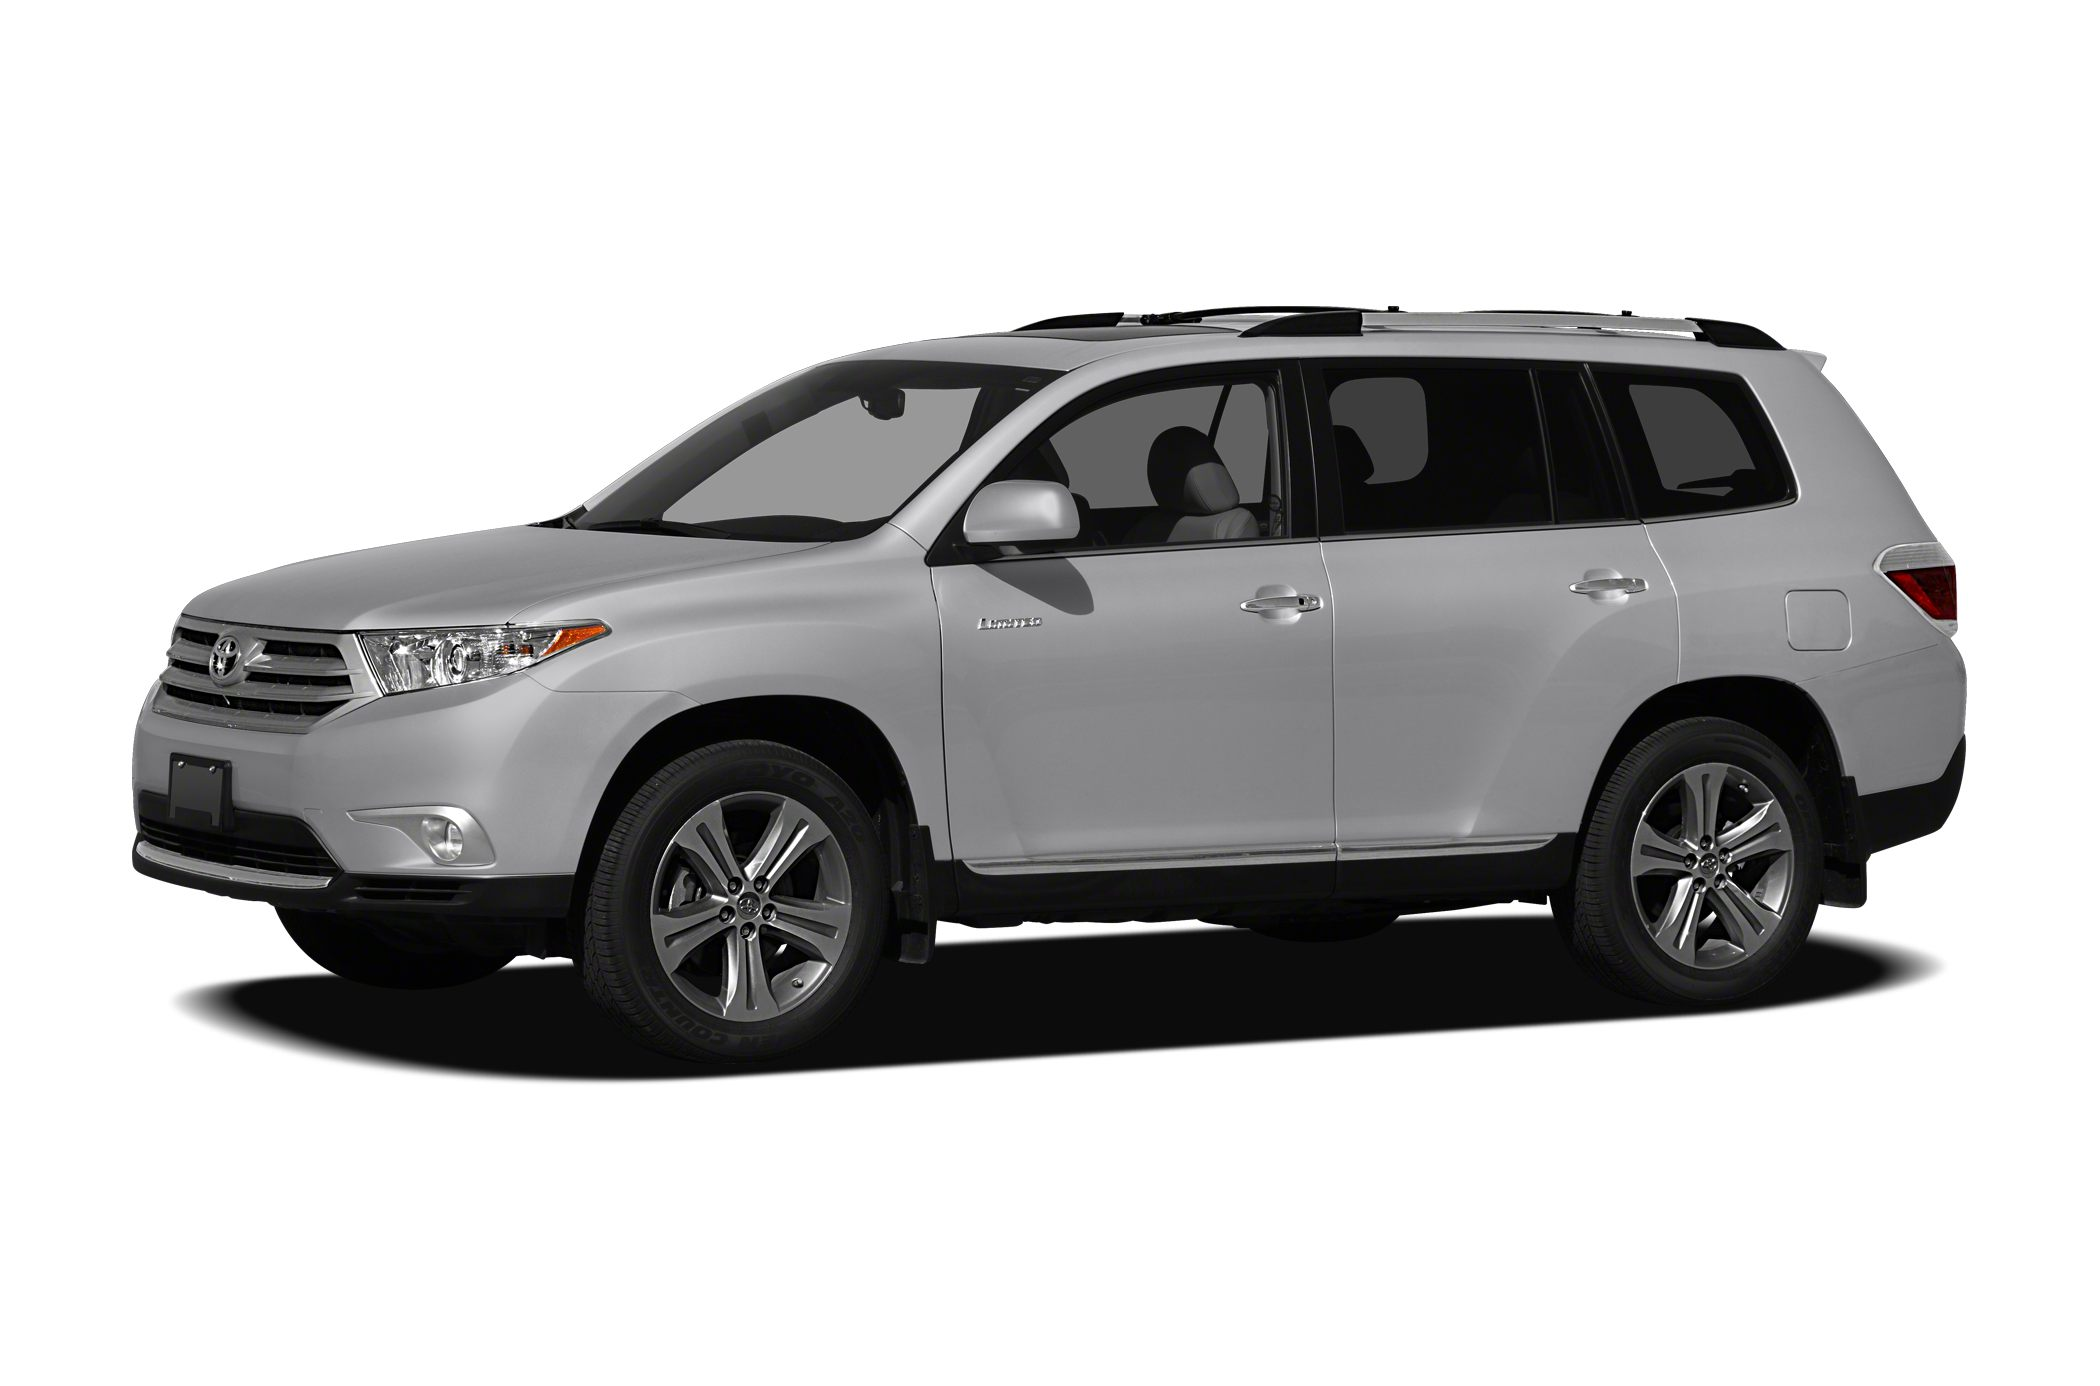 2012 Toyota Highlander  Proudly serving manatee county for over 60 years offering Cars Trucks SU